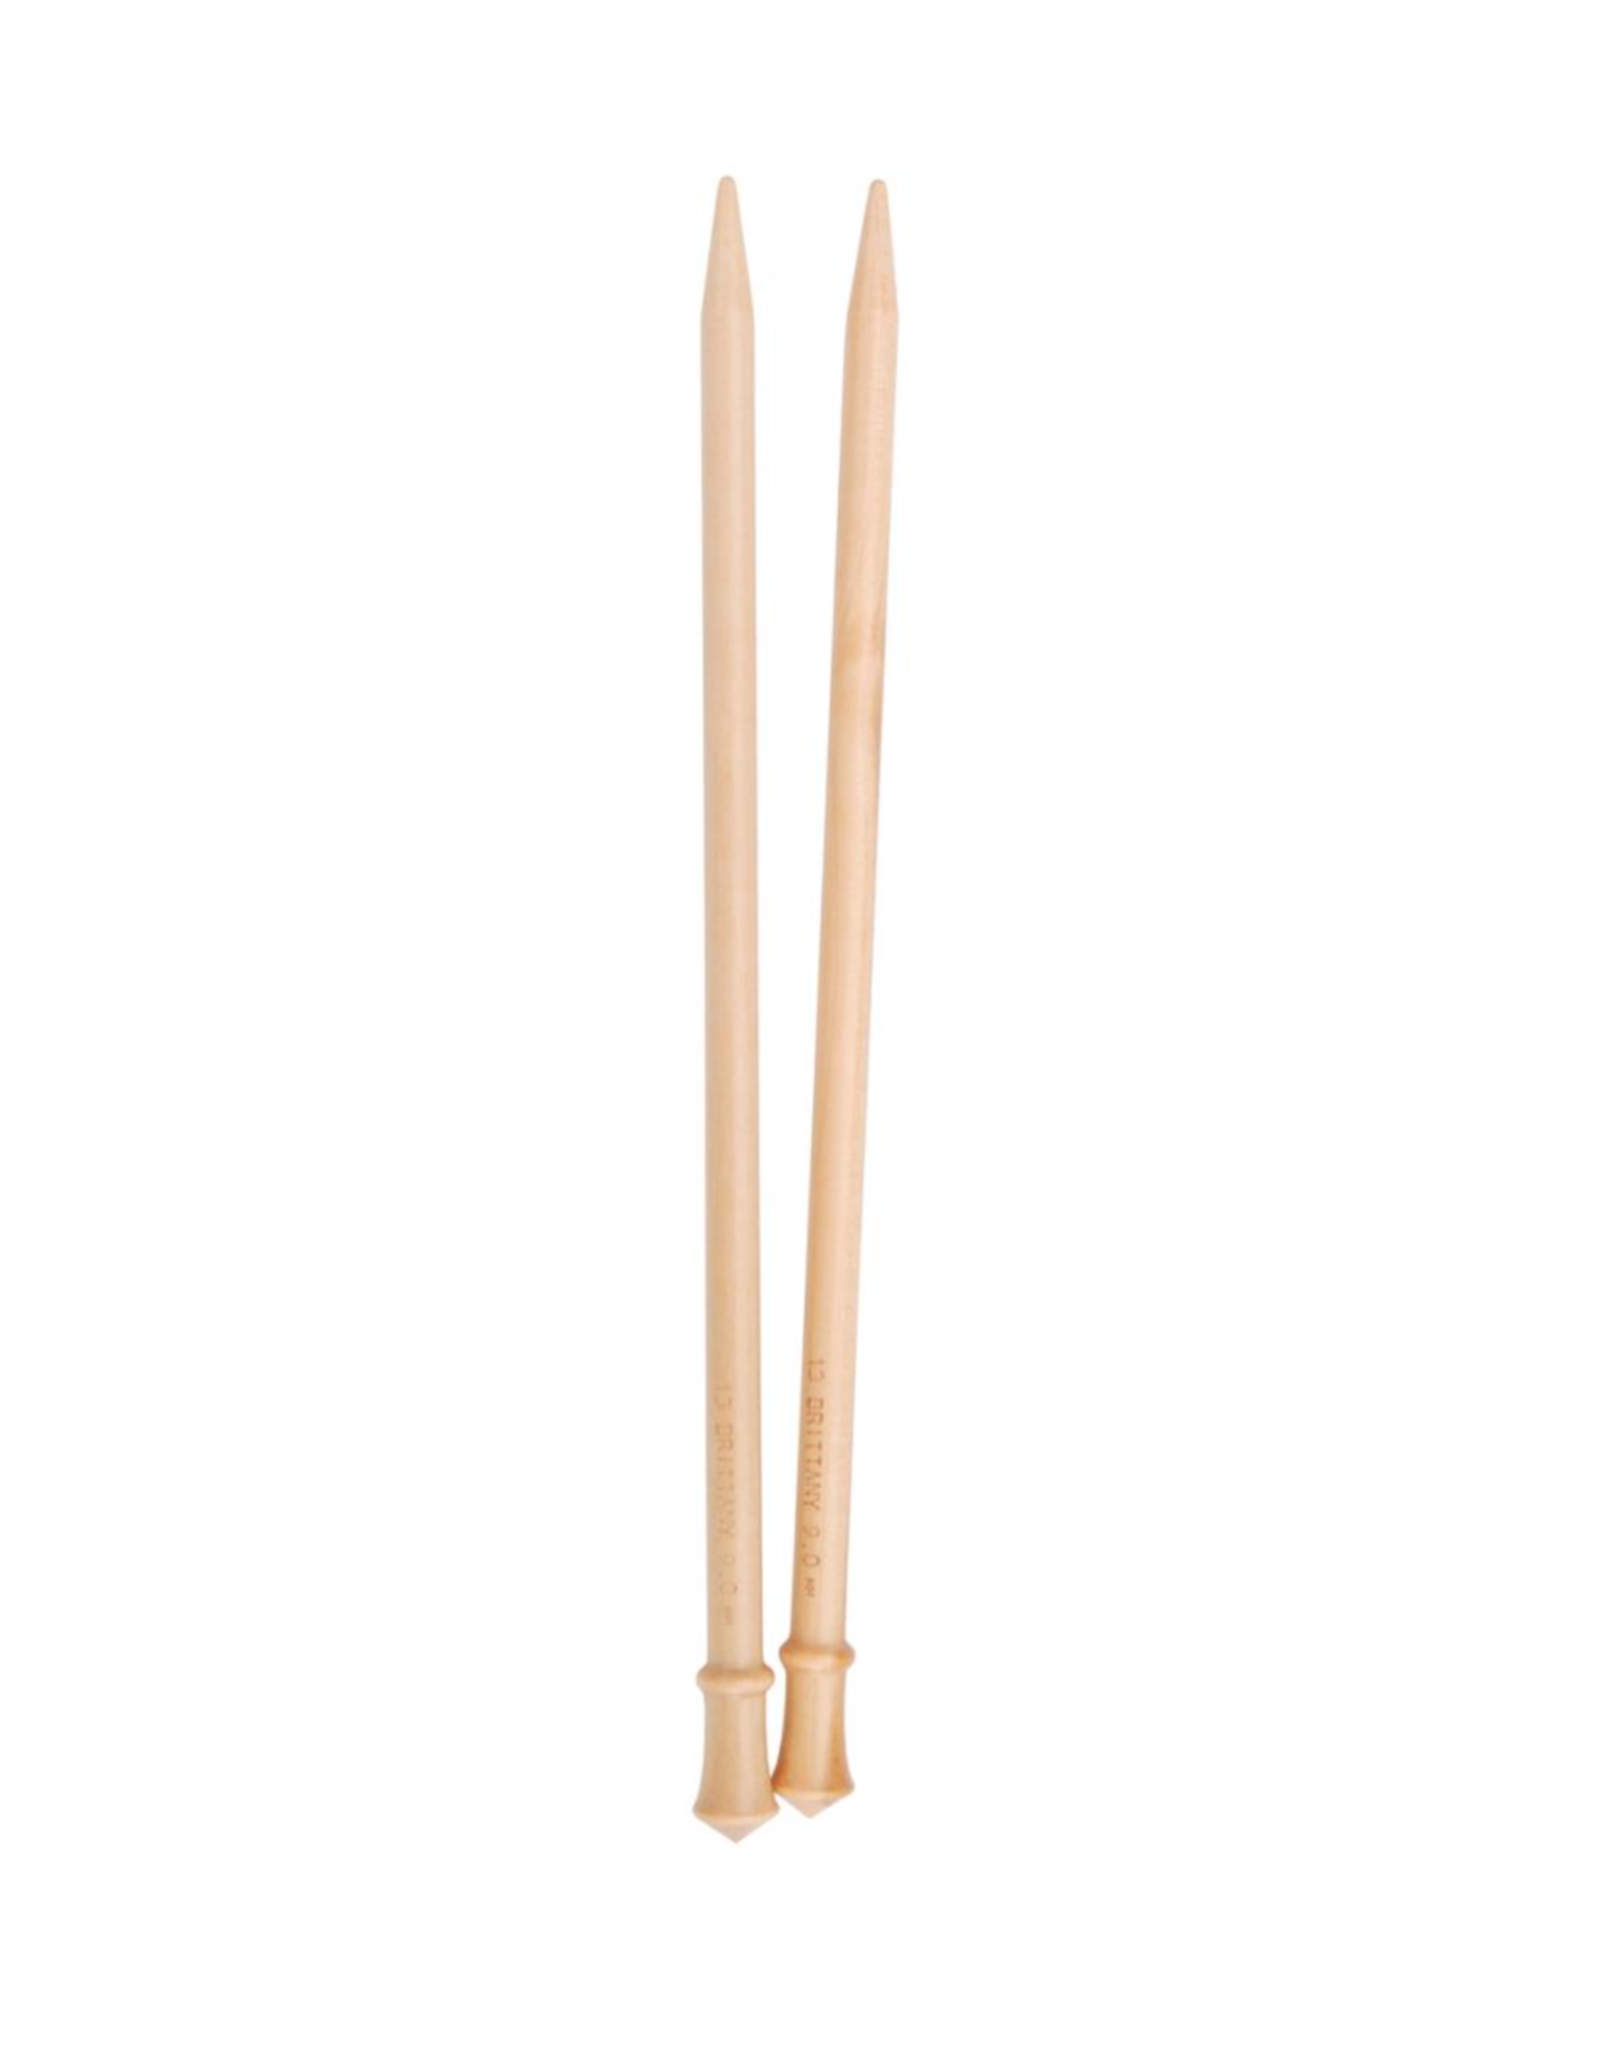 "Brittany 10"" long straight needles, size US 4"